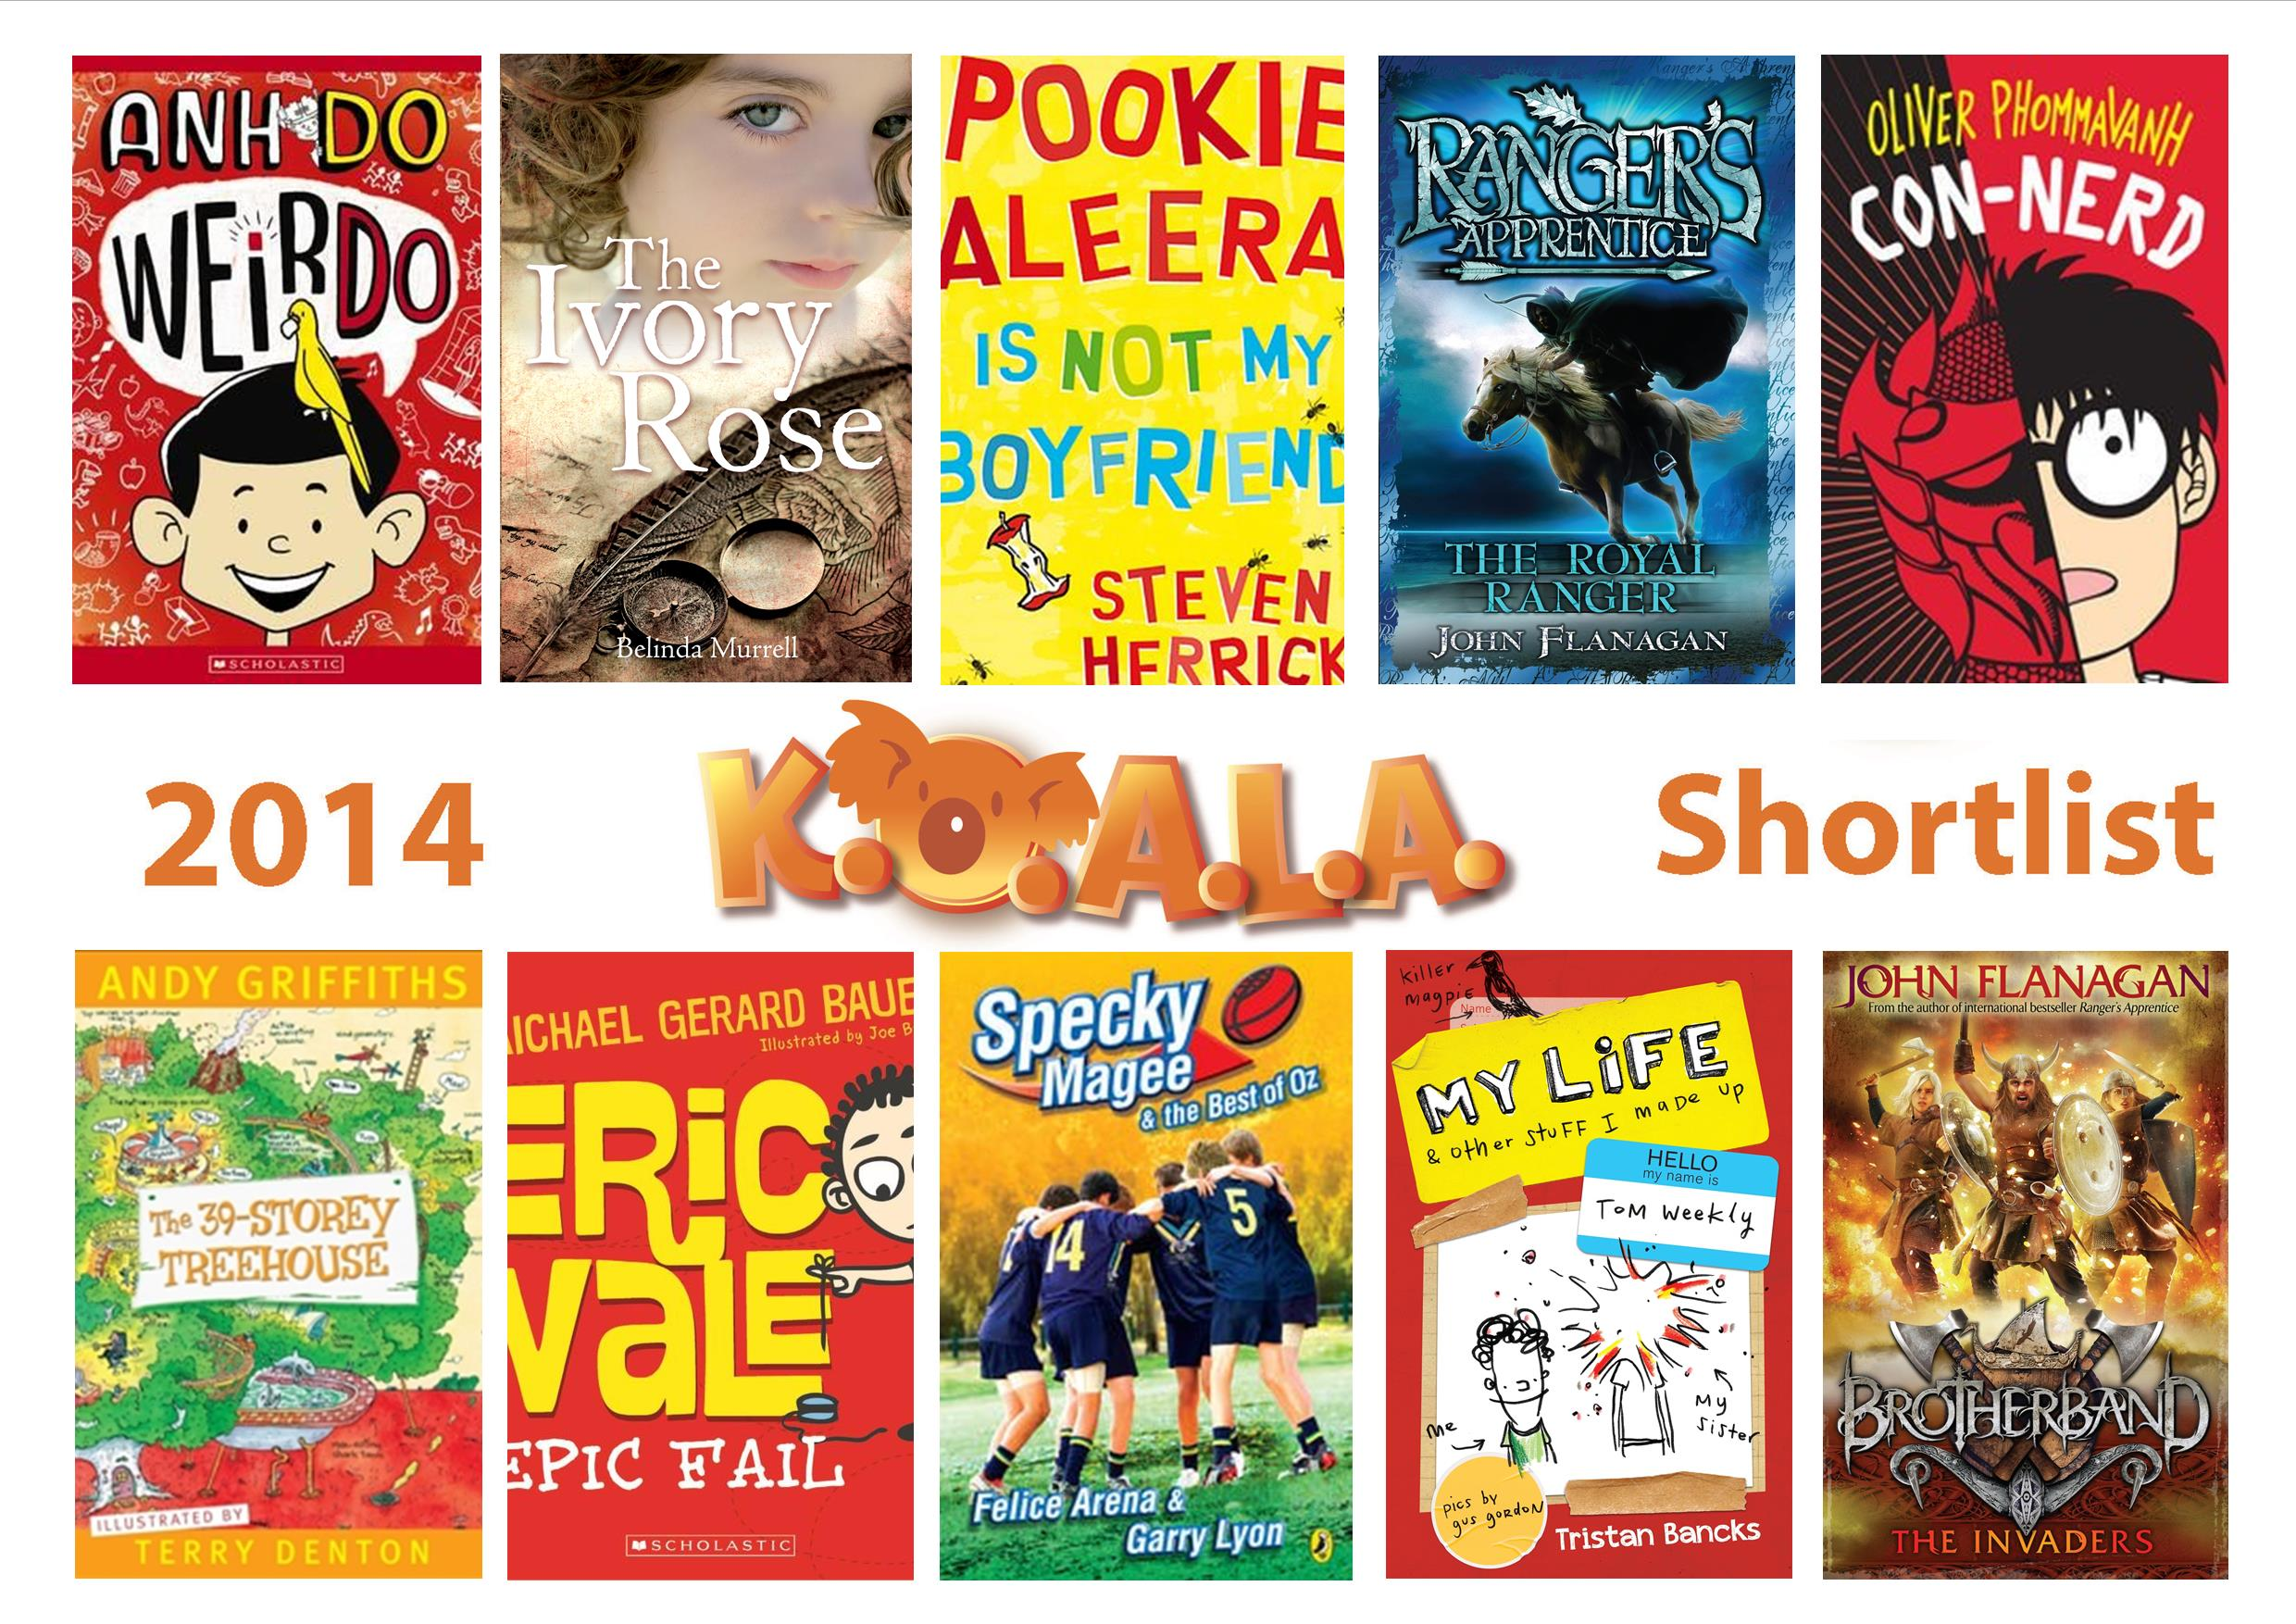 KOALA+Shortlist+poster+older+readers+2014.jpg